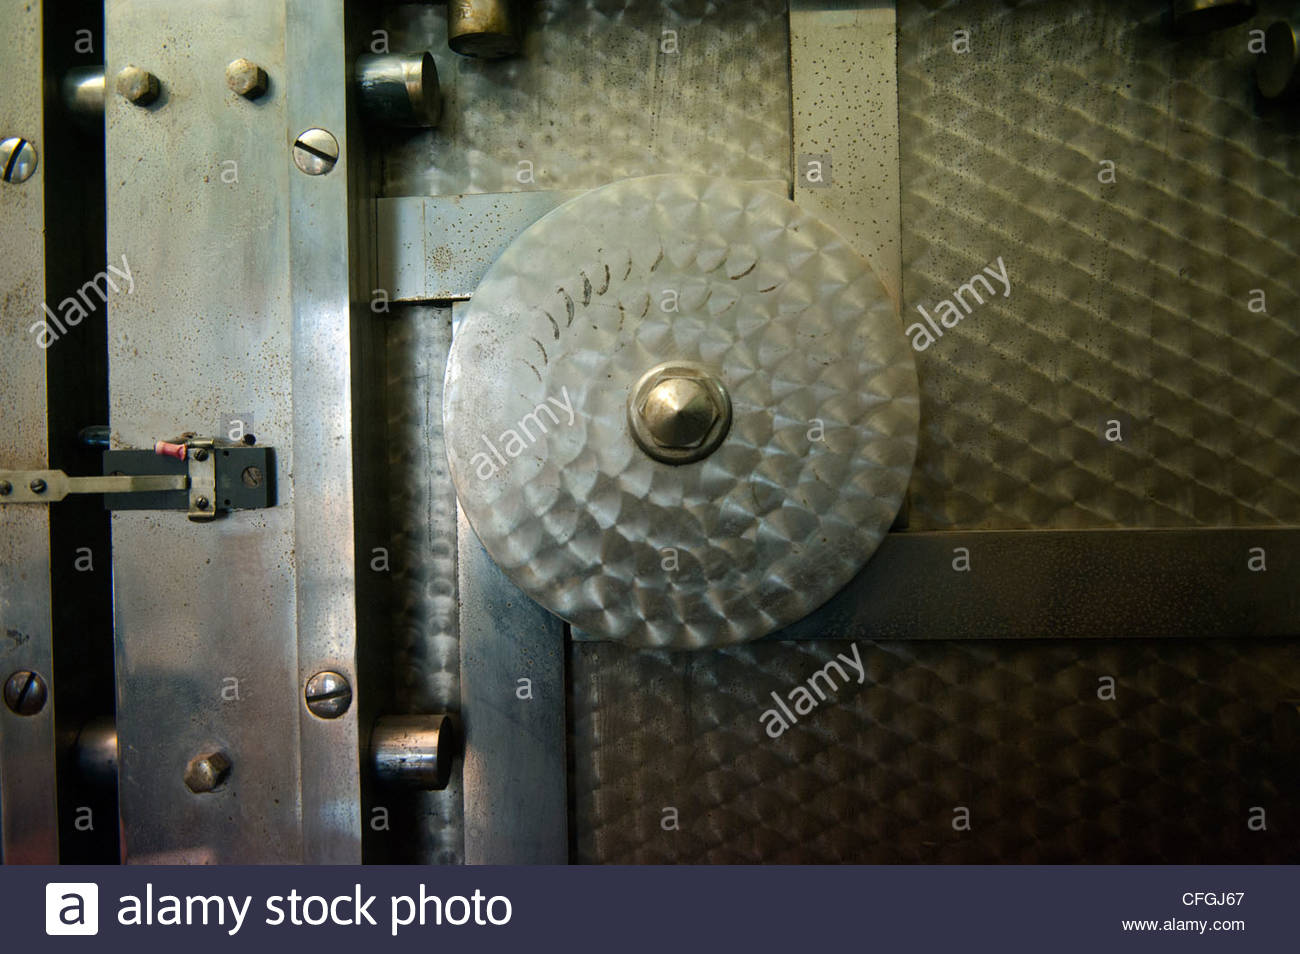 Close up of an antique vault at a bank in Talmage, Nebraska. - Stock Image